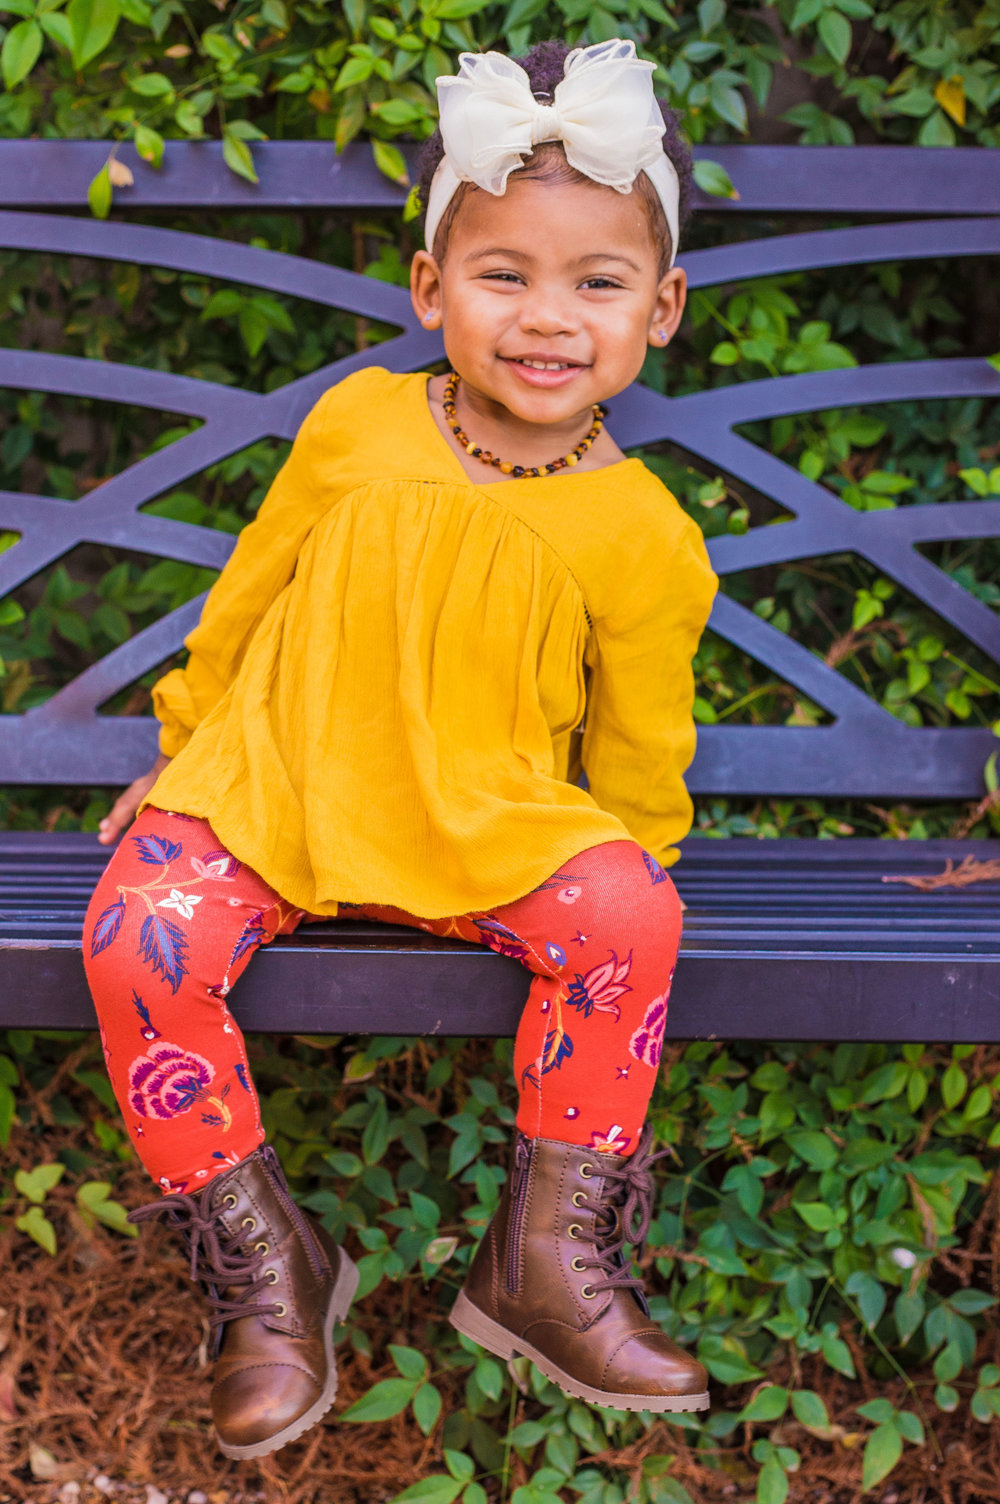 Abilene Children Photographer; I love working with the little ones they are so unpredicable in what they do.